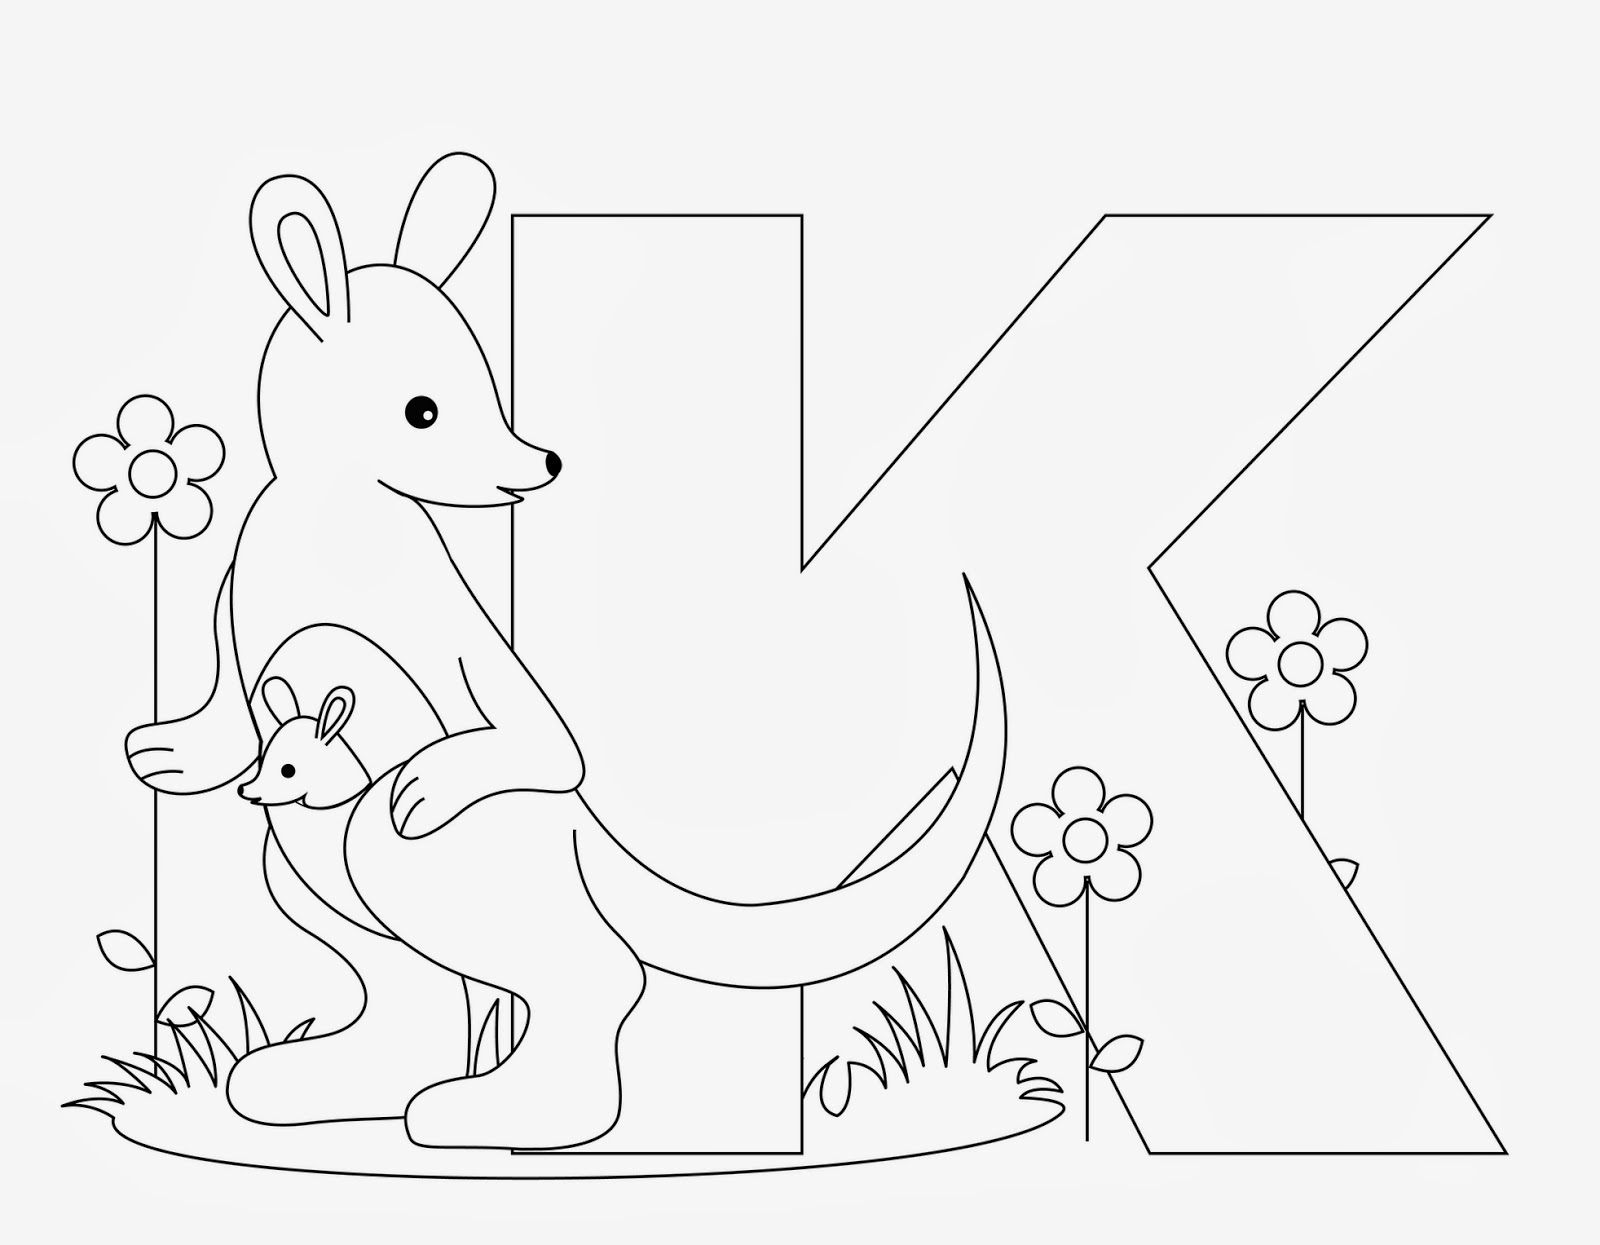 alphabet coloring pages printable - Preschool Alphabet Coloring Book TLSBooks